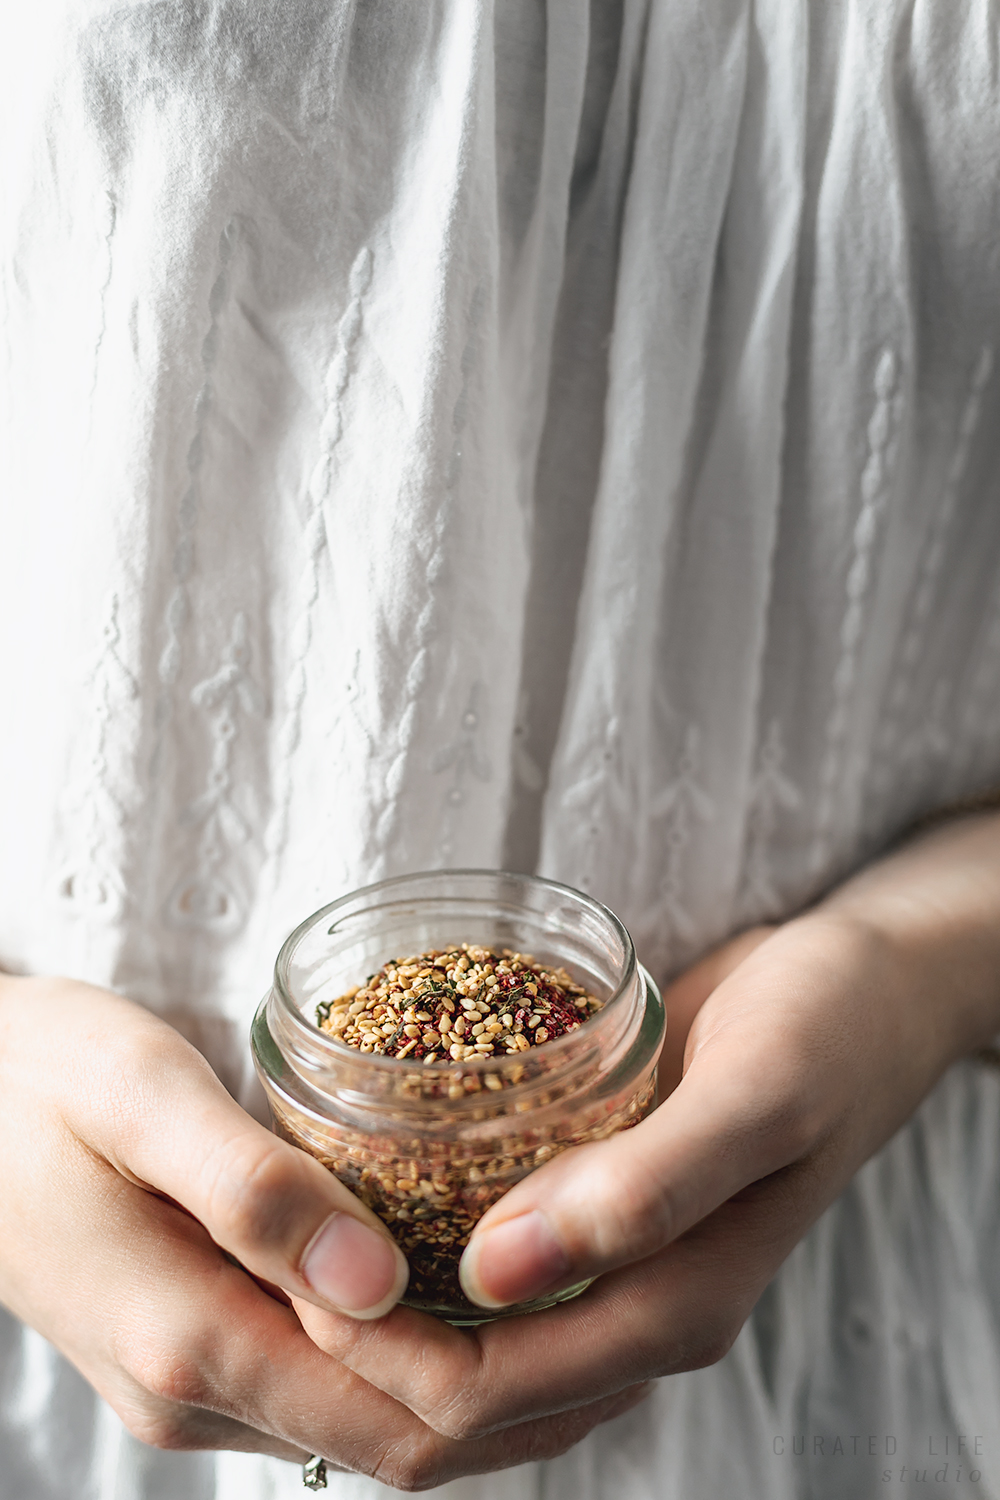 Vegan, gluten free and Low FODMAP, Za'atar is perfect with any meal or used as an accompaniment!   From stove to table in under 5 minutes, the spice blend offers a unique flavour combination of tart astringency, herbal earthiness and citrus characters.   Curated Life Studio   #zaatar #za'atar #middle_eastern_spice #how_to_make #recipe #easy #curatedlifestudio #authentic